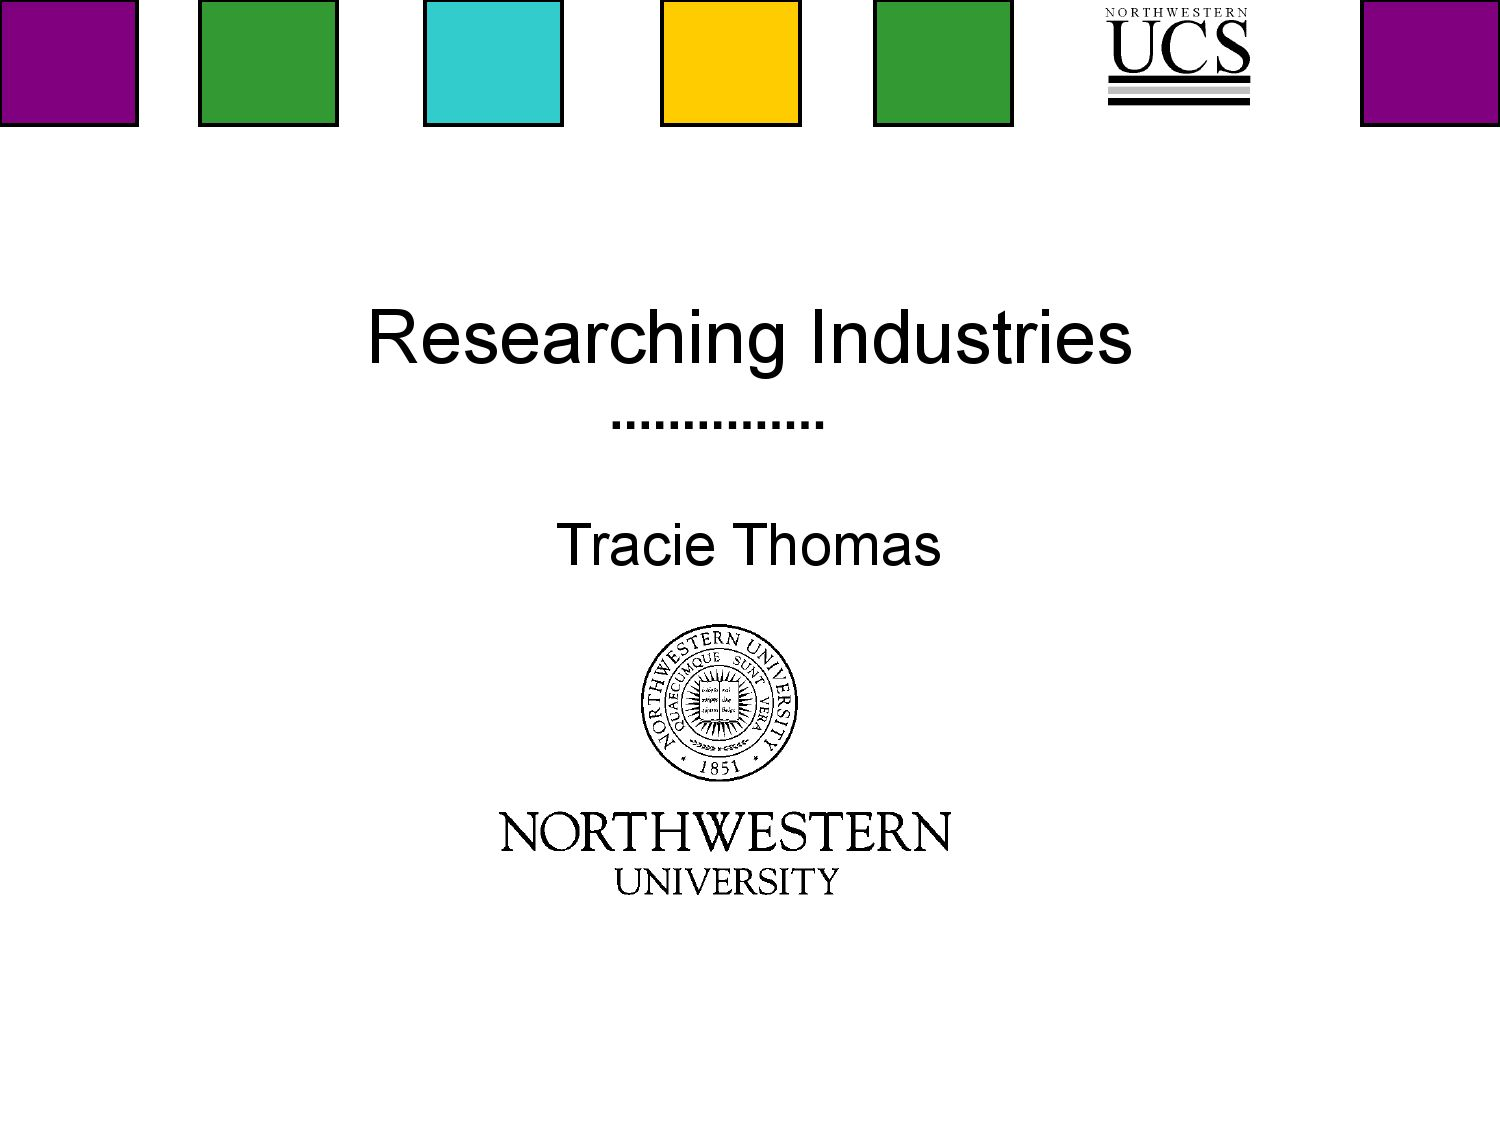 Researching industries in your internship search by for Northwestern industries